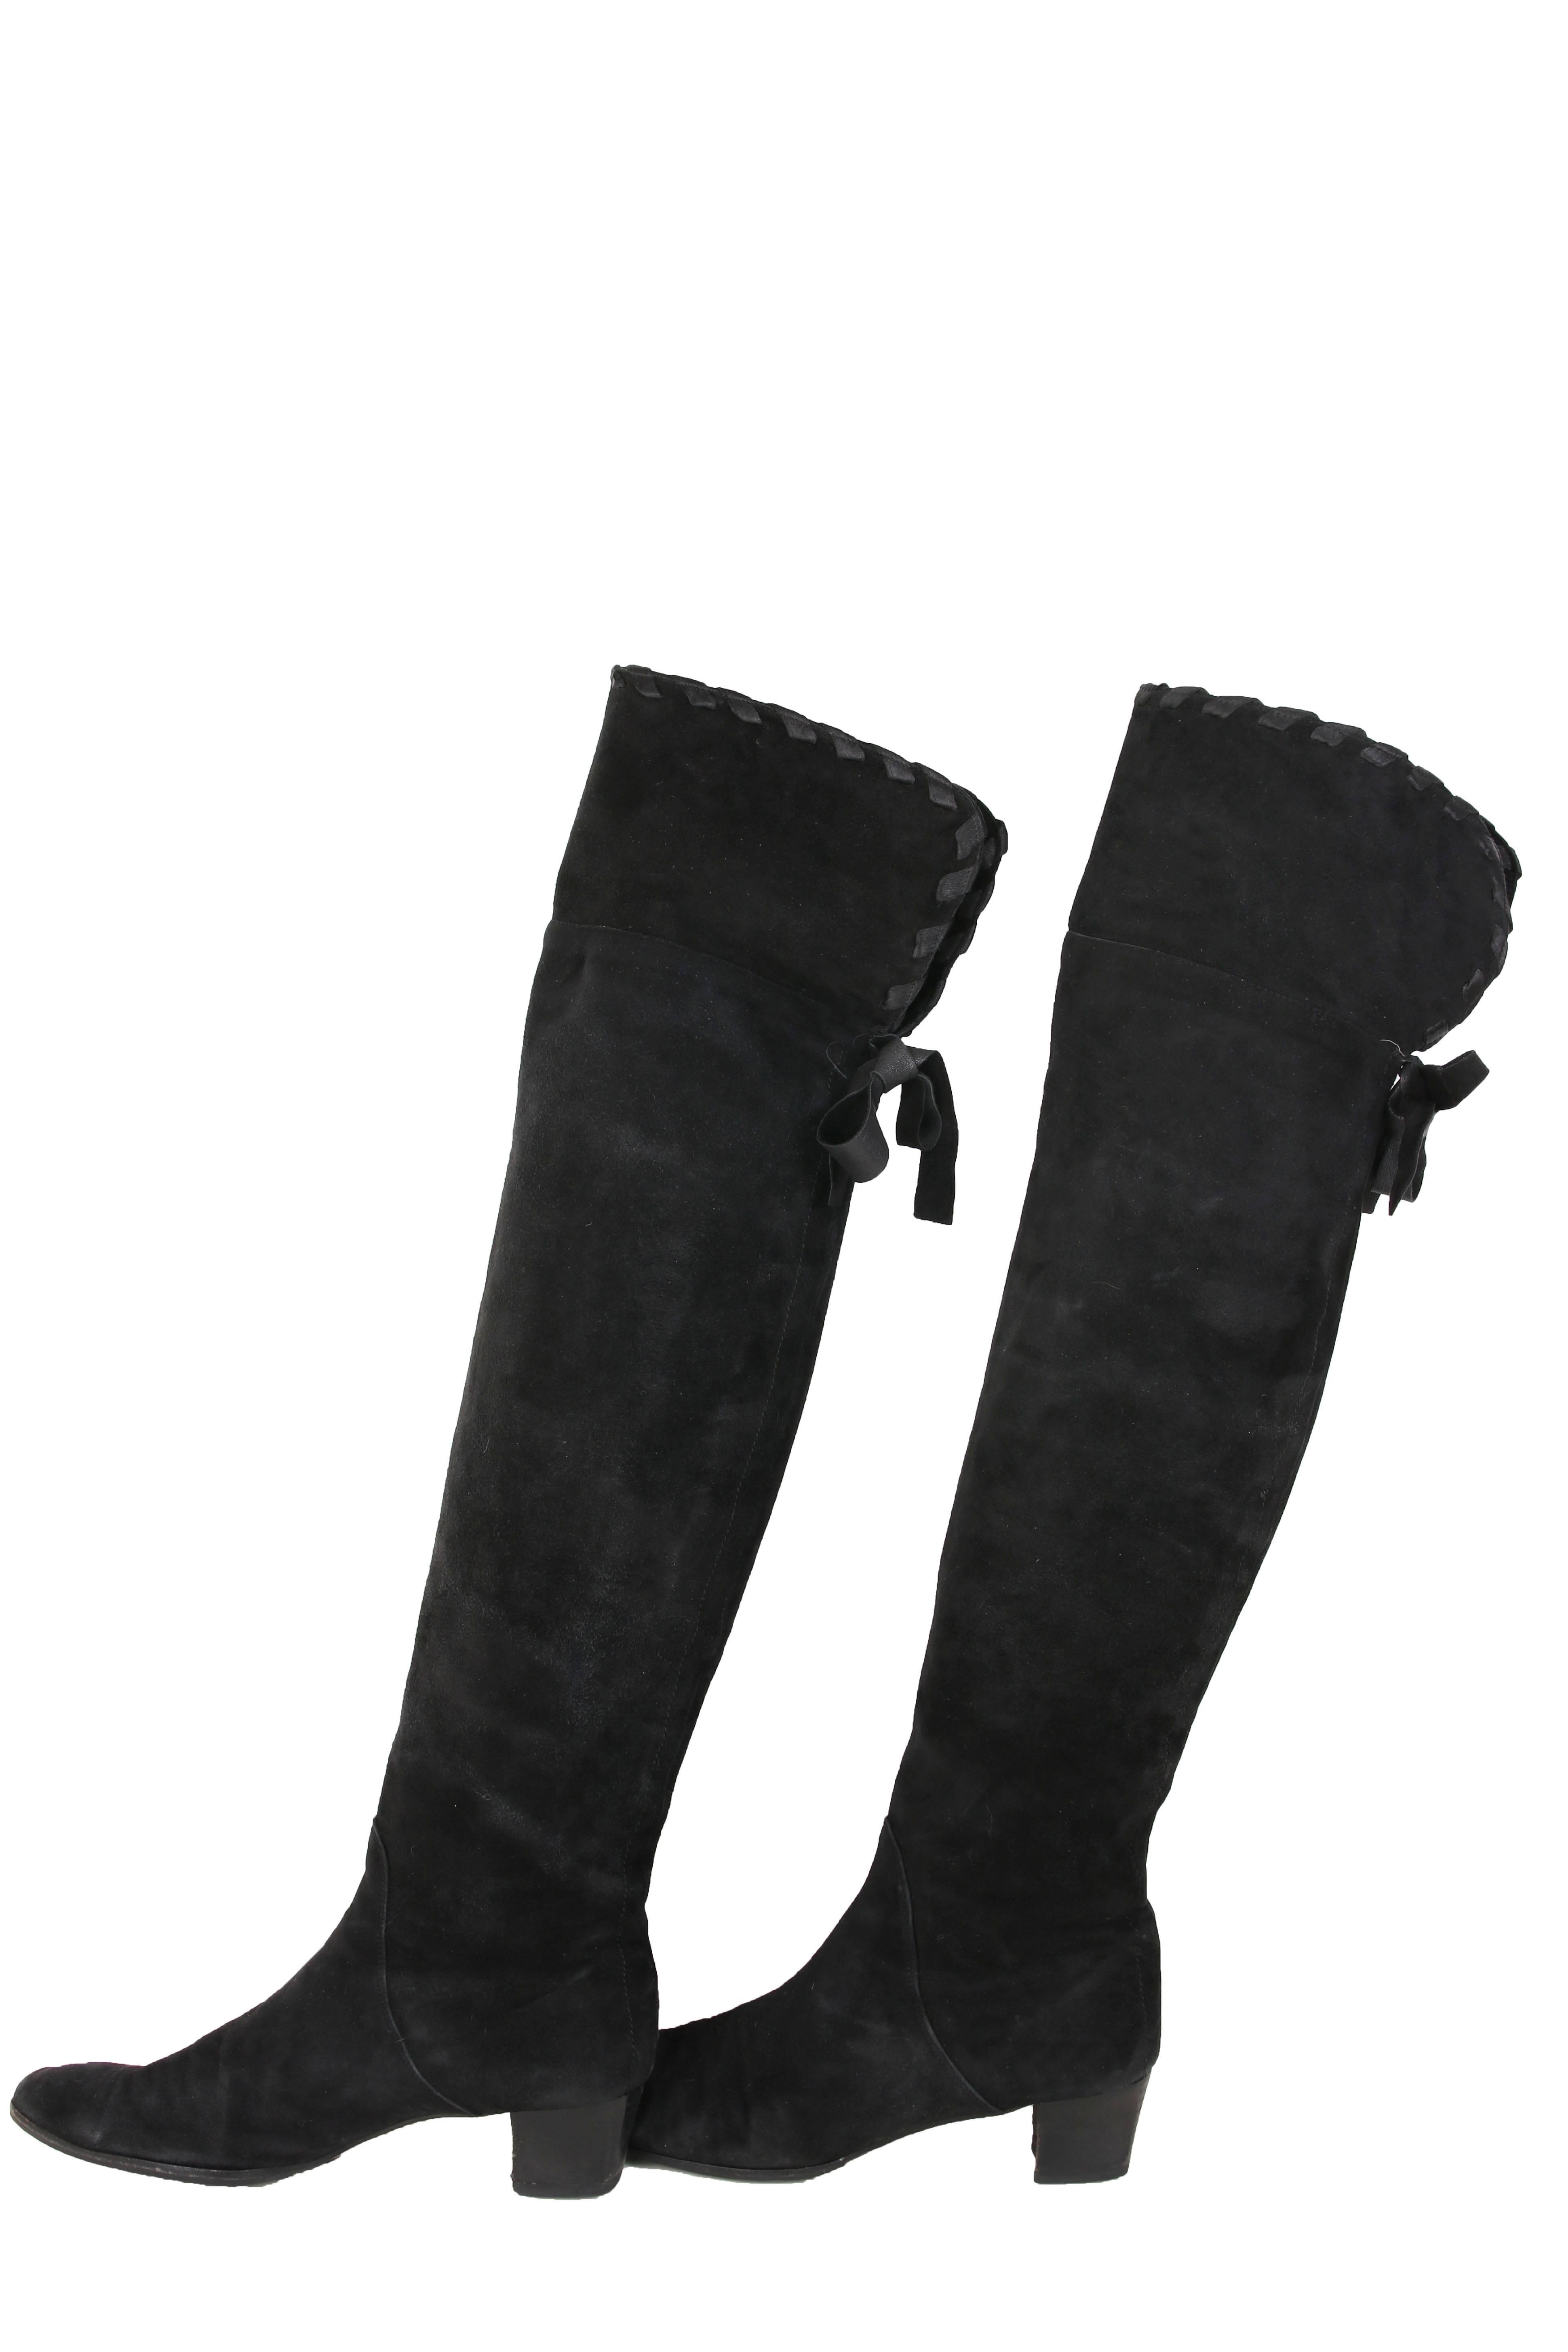 132fe68fb30 ... best price yves saint laurent vintage black suede thigh high boots in  excellent condition for sale